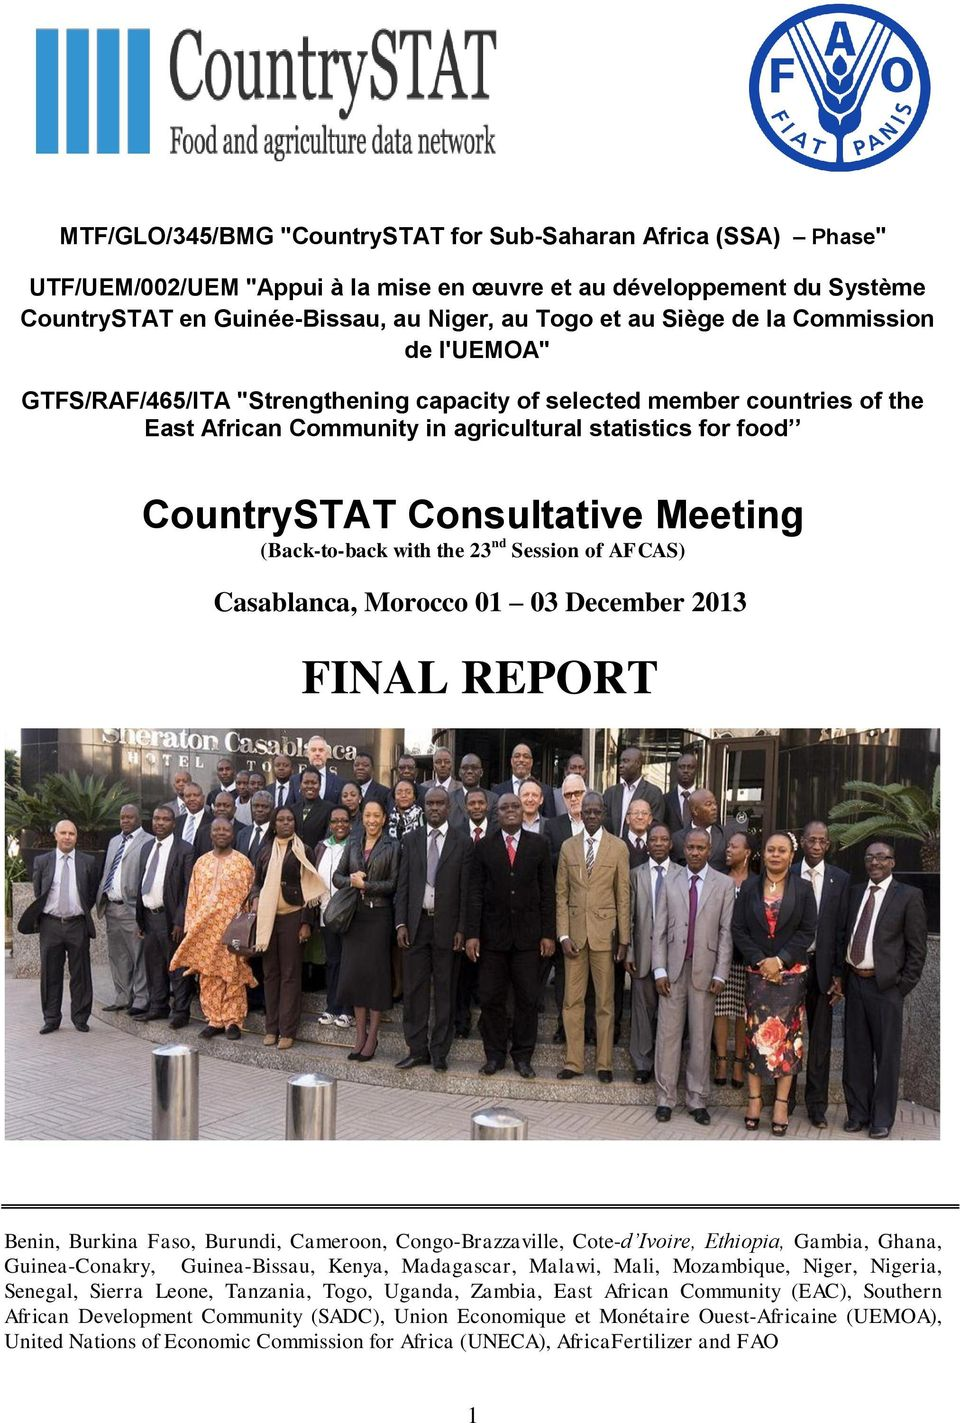 (Back-to-back with the 23 nd Session of AFCAS) Casablanca, Morocco 01 03 December 2013 FINAL REPORT Benin, Burkina Faso, Burundi, Cameroon, Congo-Brazzaville, Cote-d Ivoire, Ethiopia, Gambia, Ghana,